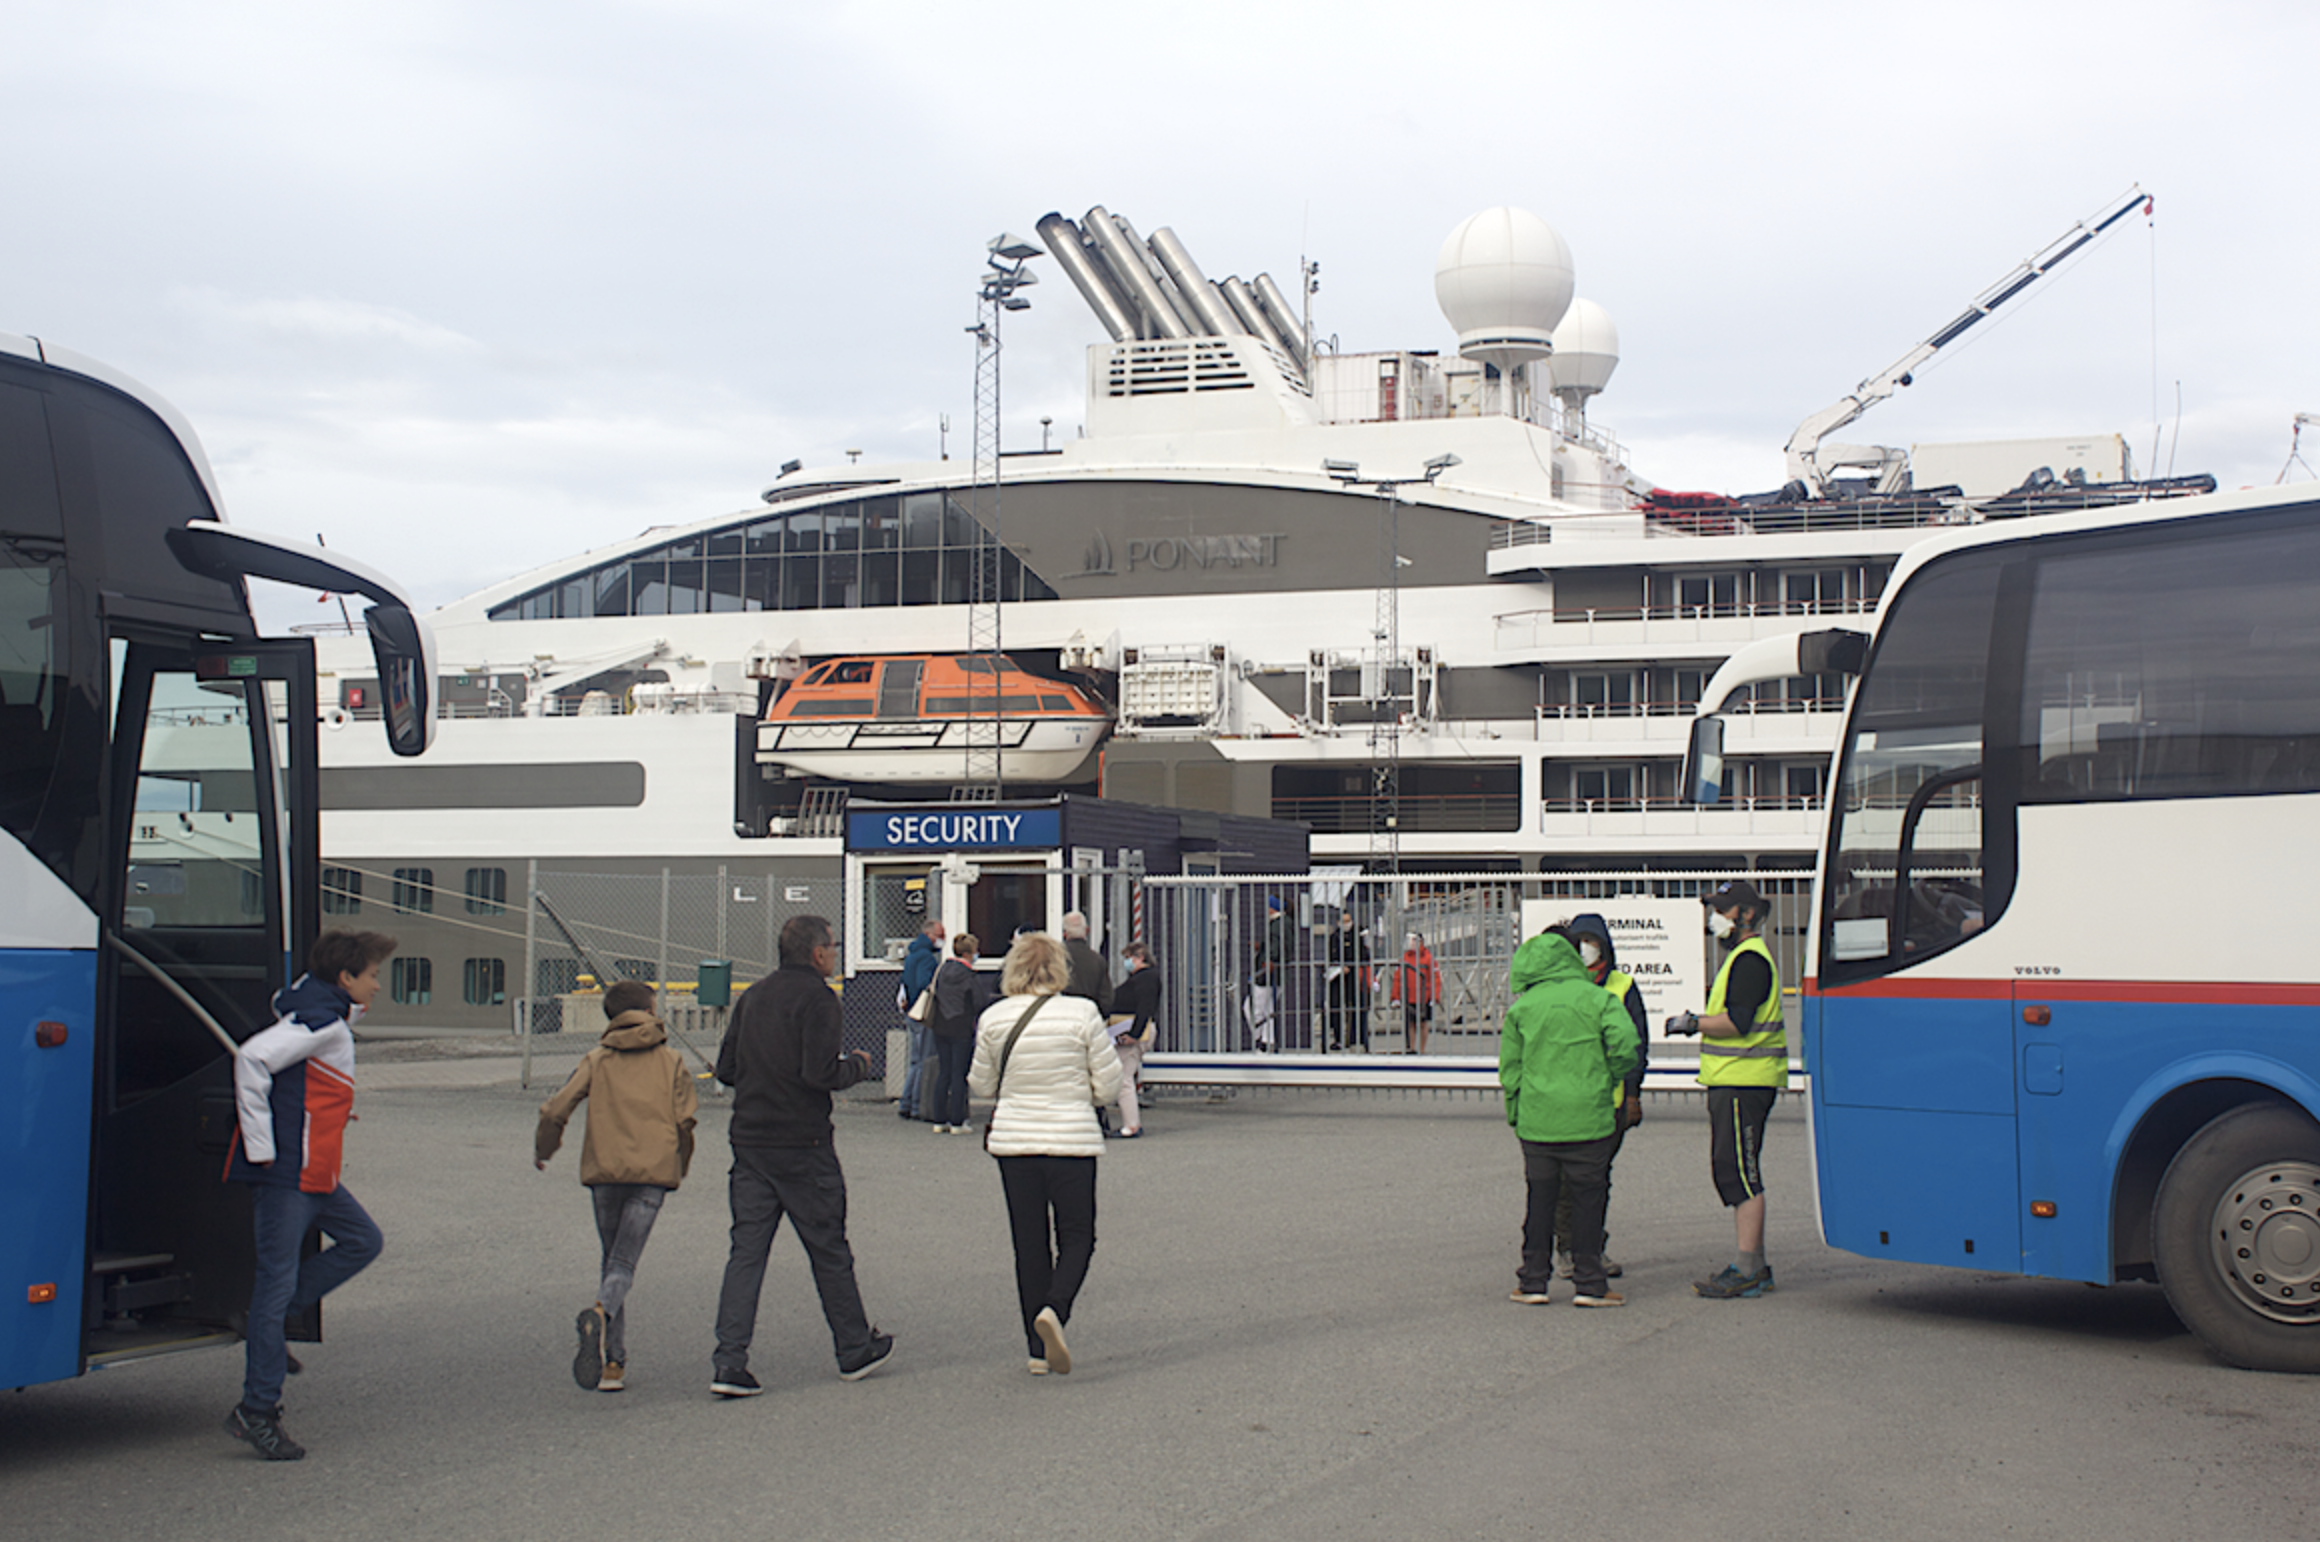 Norway bans all cruise ships with 100+ on board, but Ponant is still selling tickets for next week's luxury Svalbard voyage